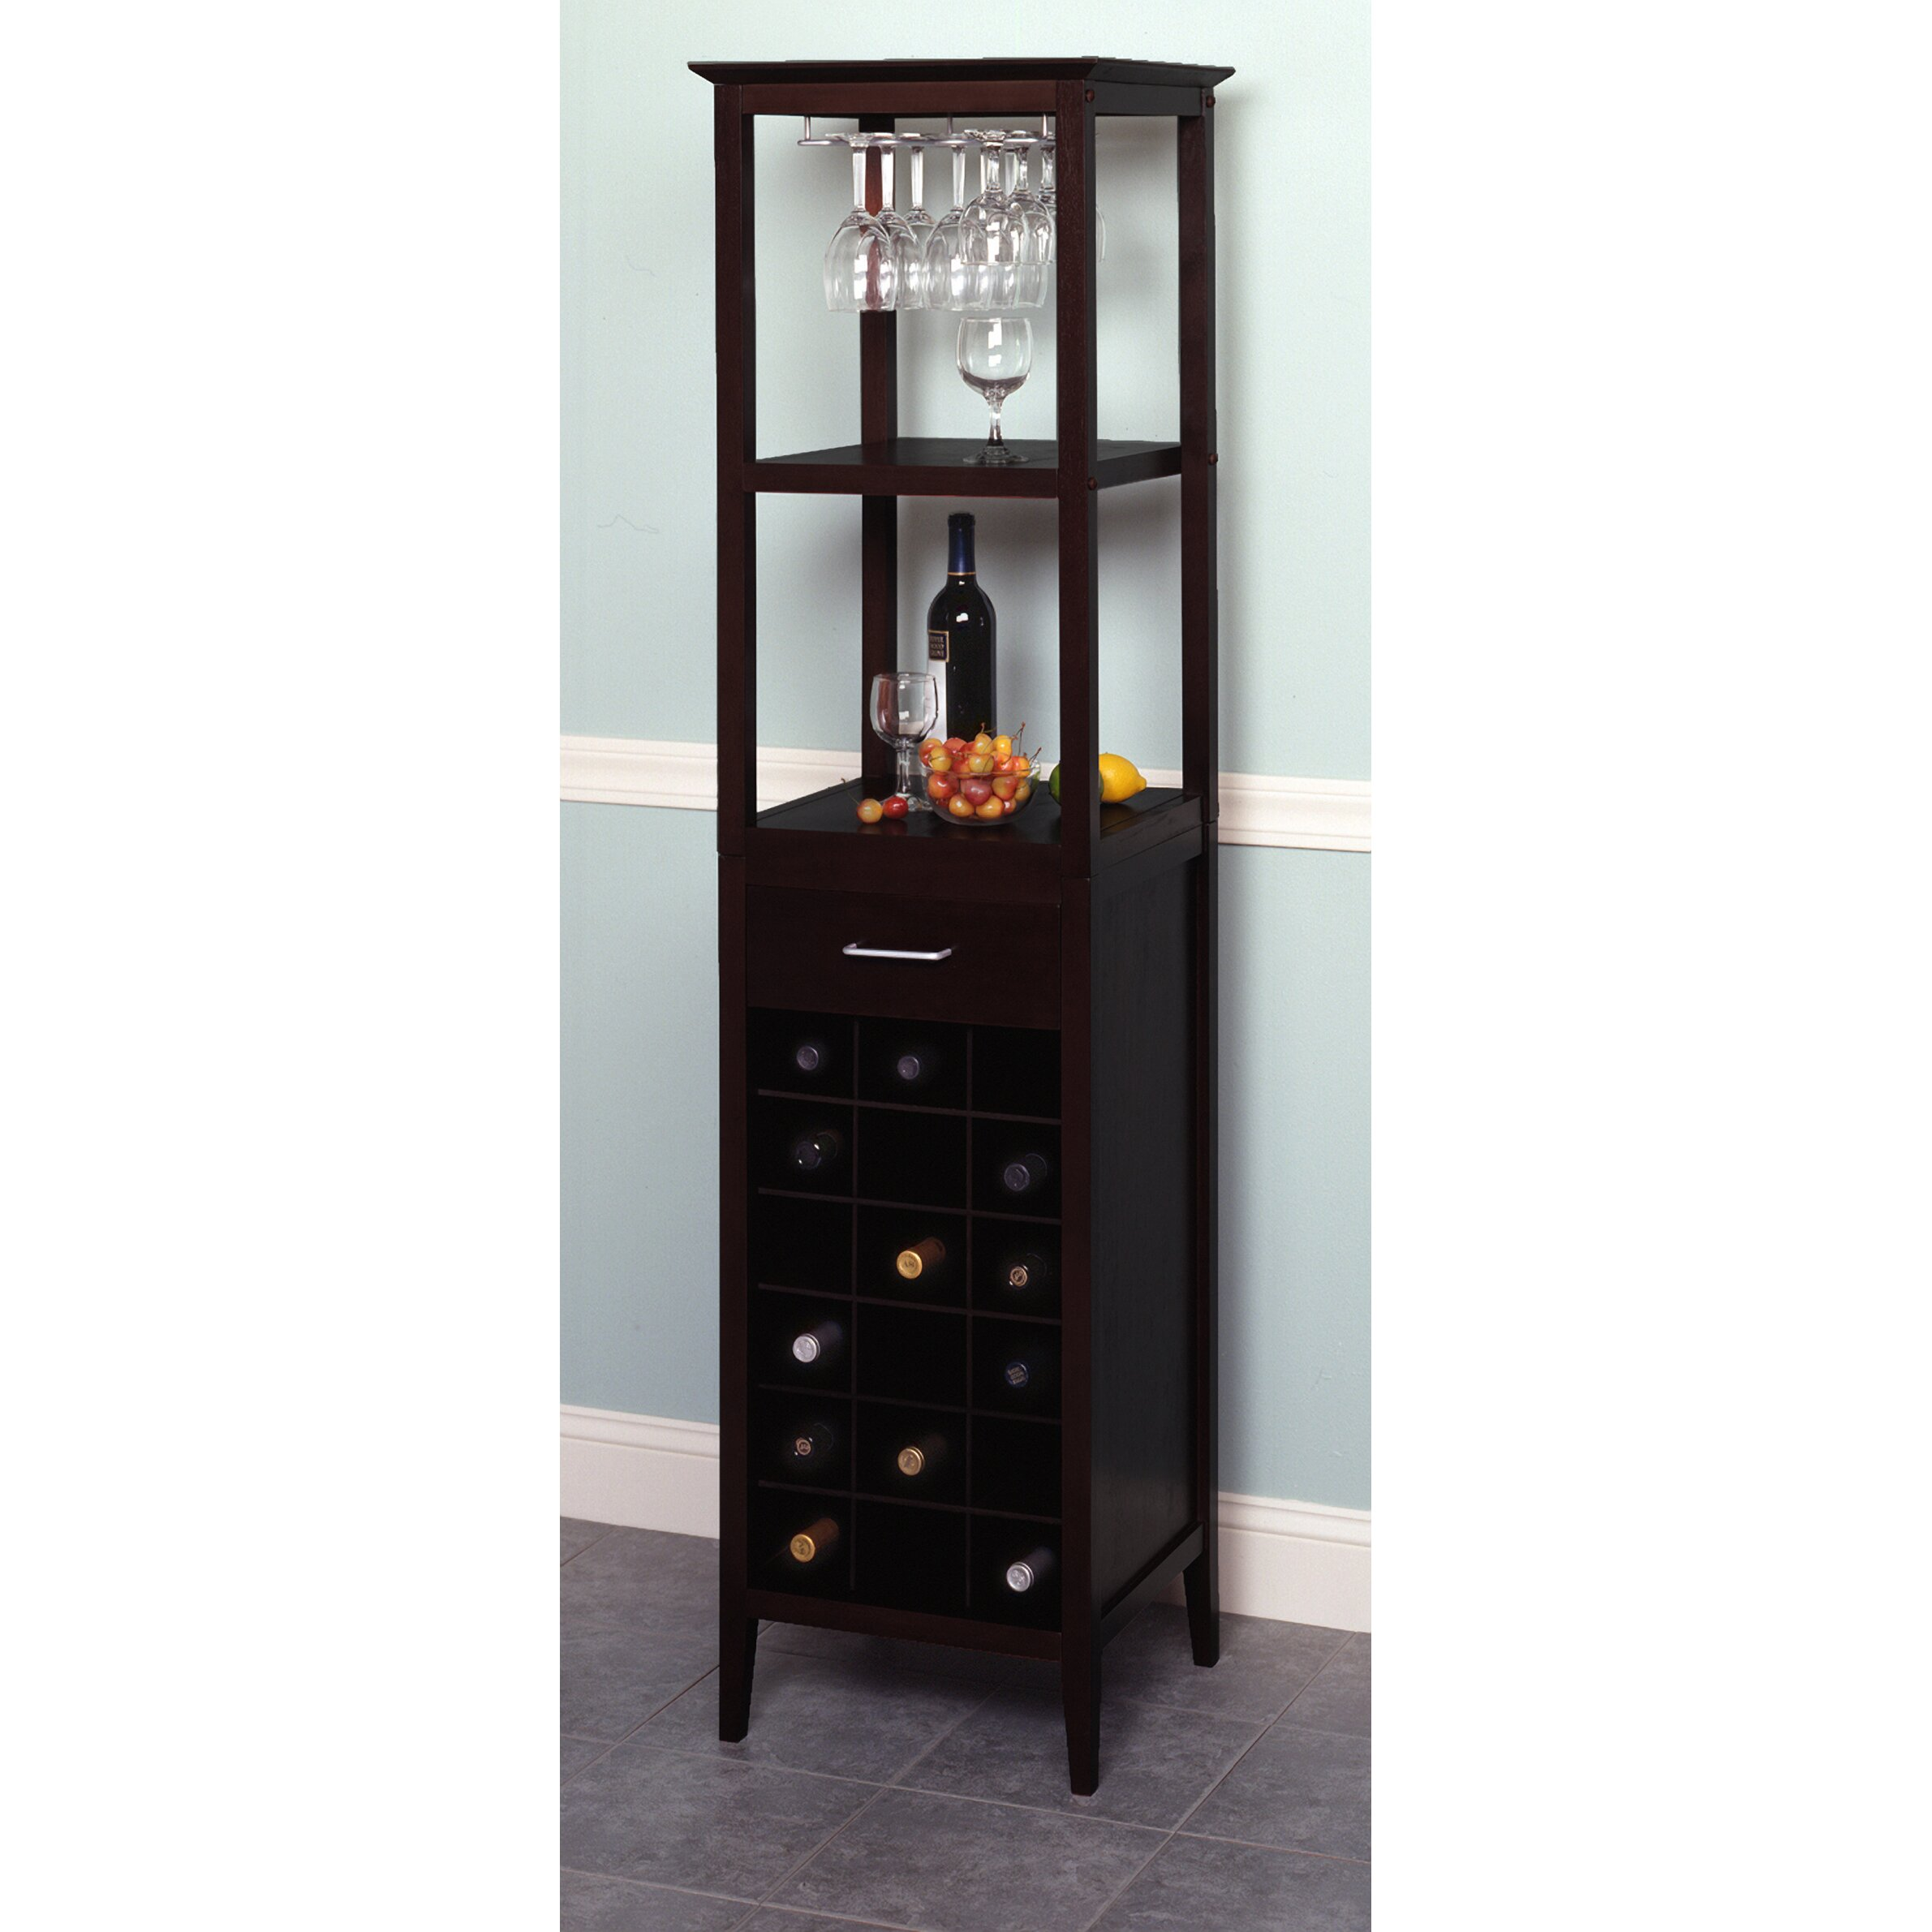 Winsome espresso 18 bottle floor wine rack reviews for Floor wine rack